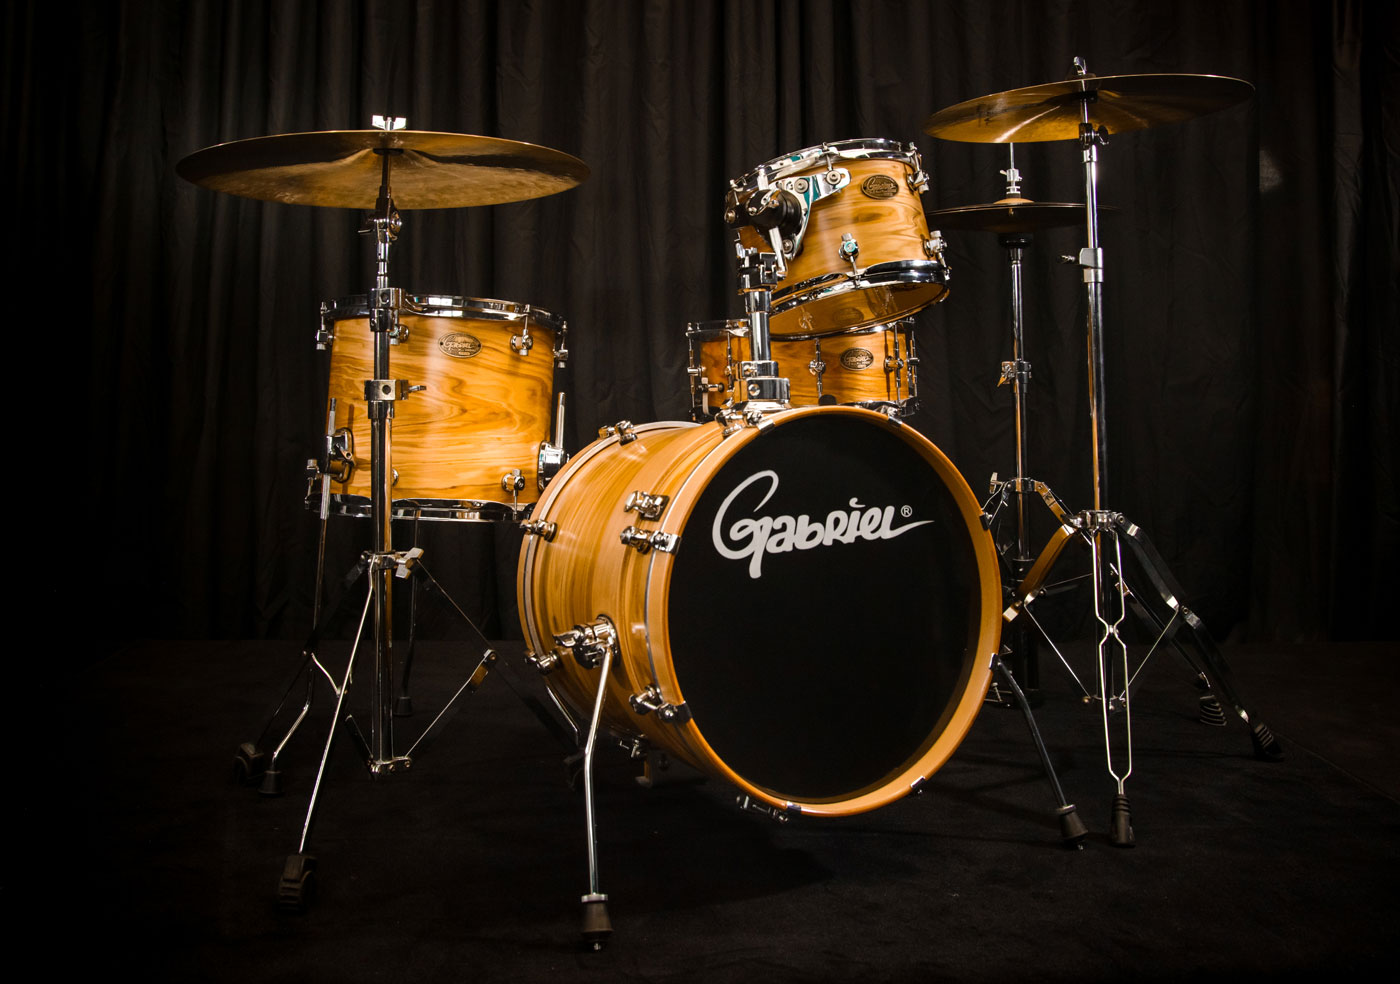 Pro-Mini Gabriel Drum Kit